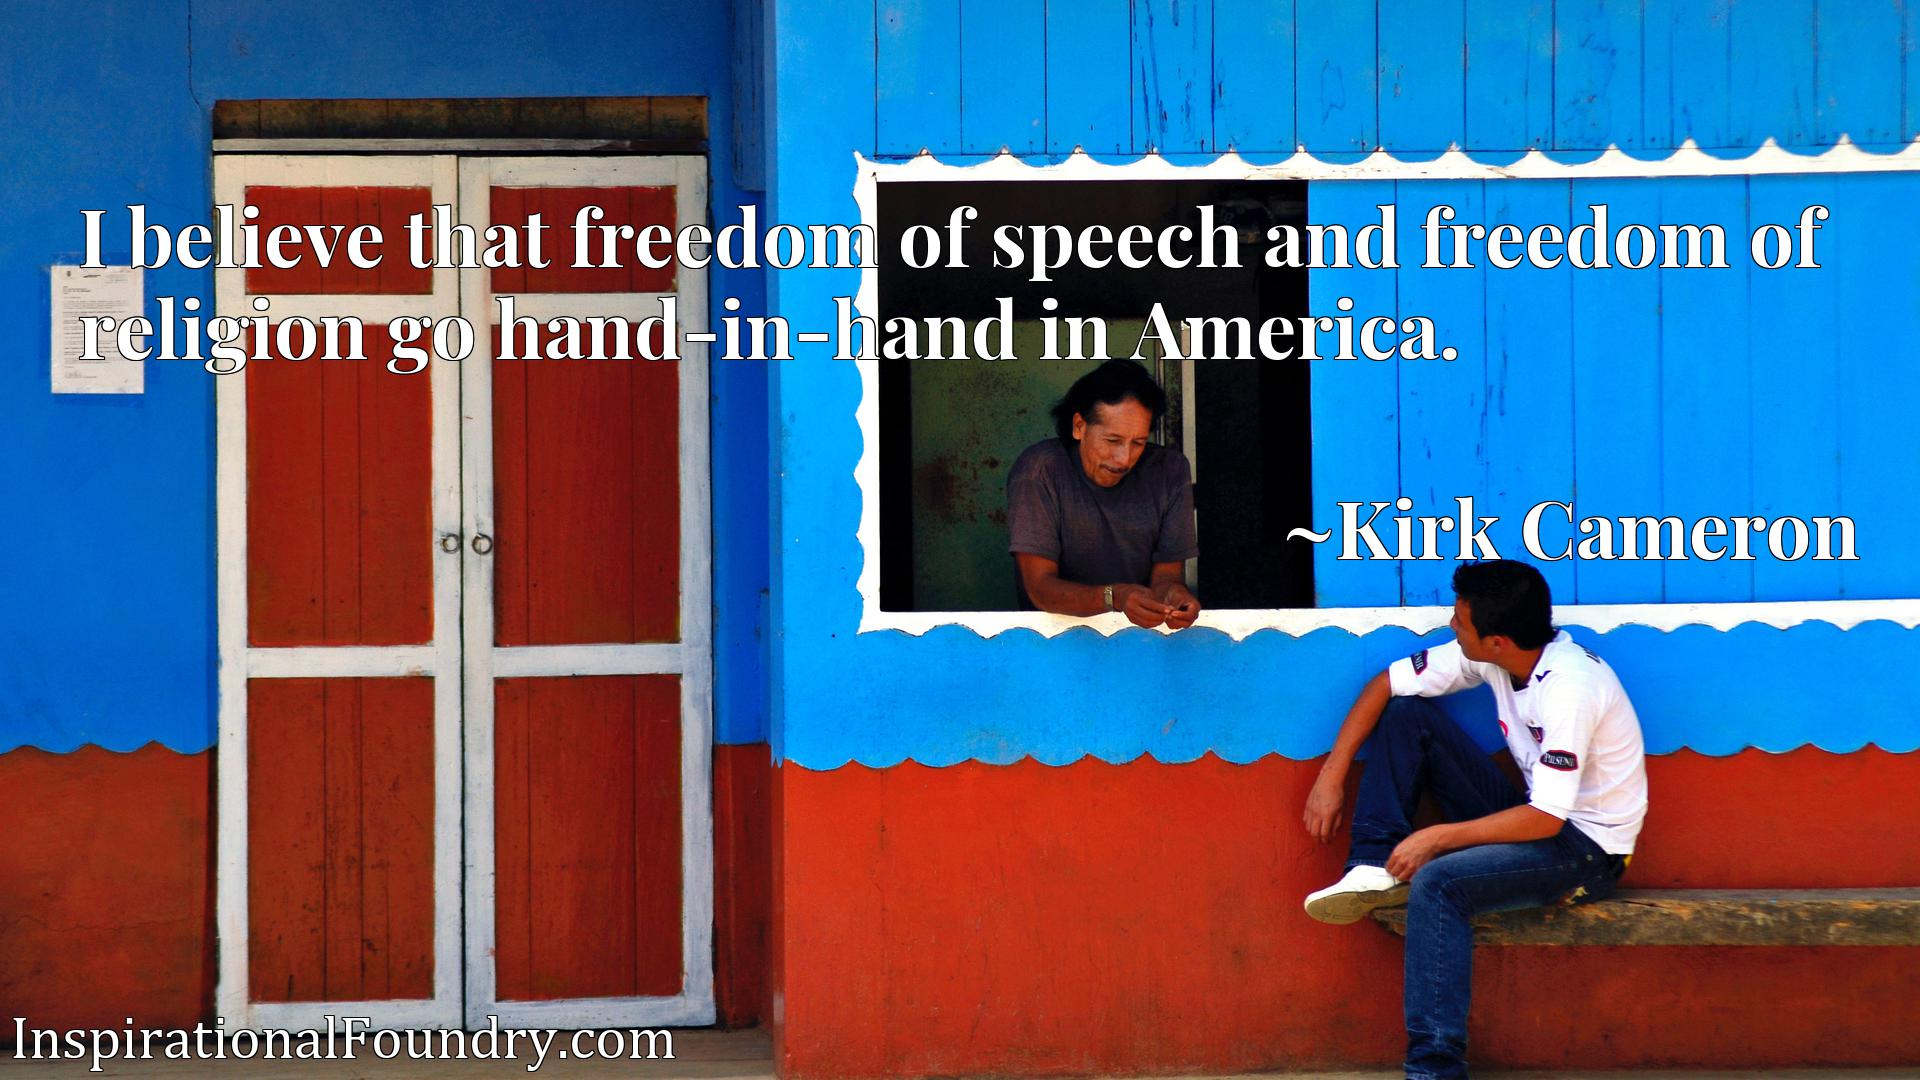 I believe that freedom of speech and freedom of religion go hand-in-hand in America.